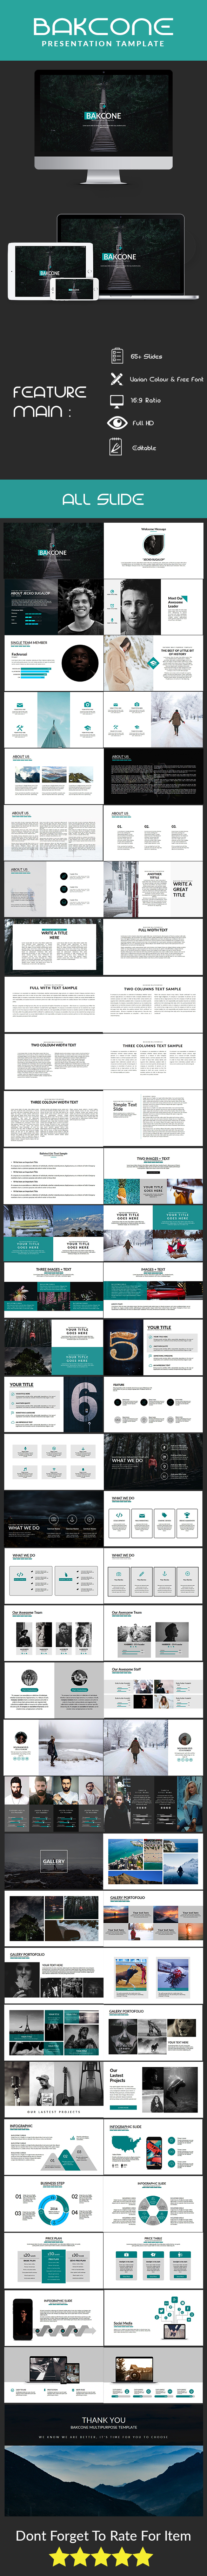 Backone Mulptipurpose Template - PowerPoint Templates Presentation Templates